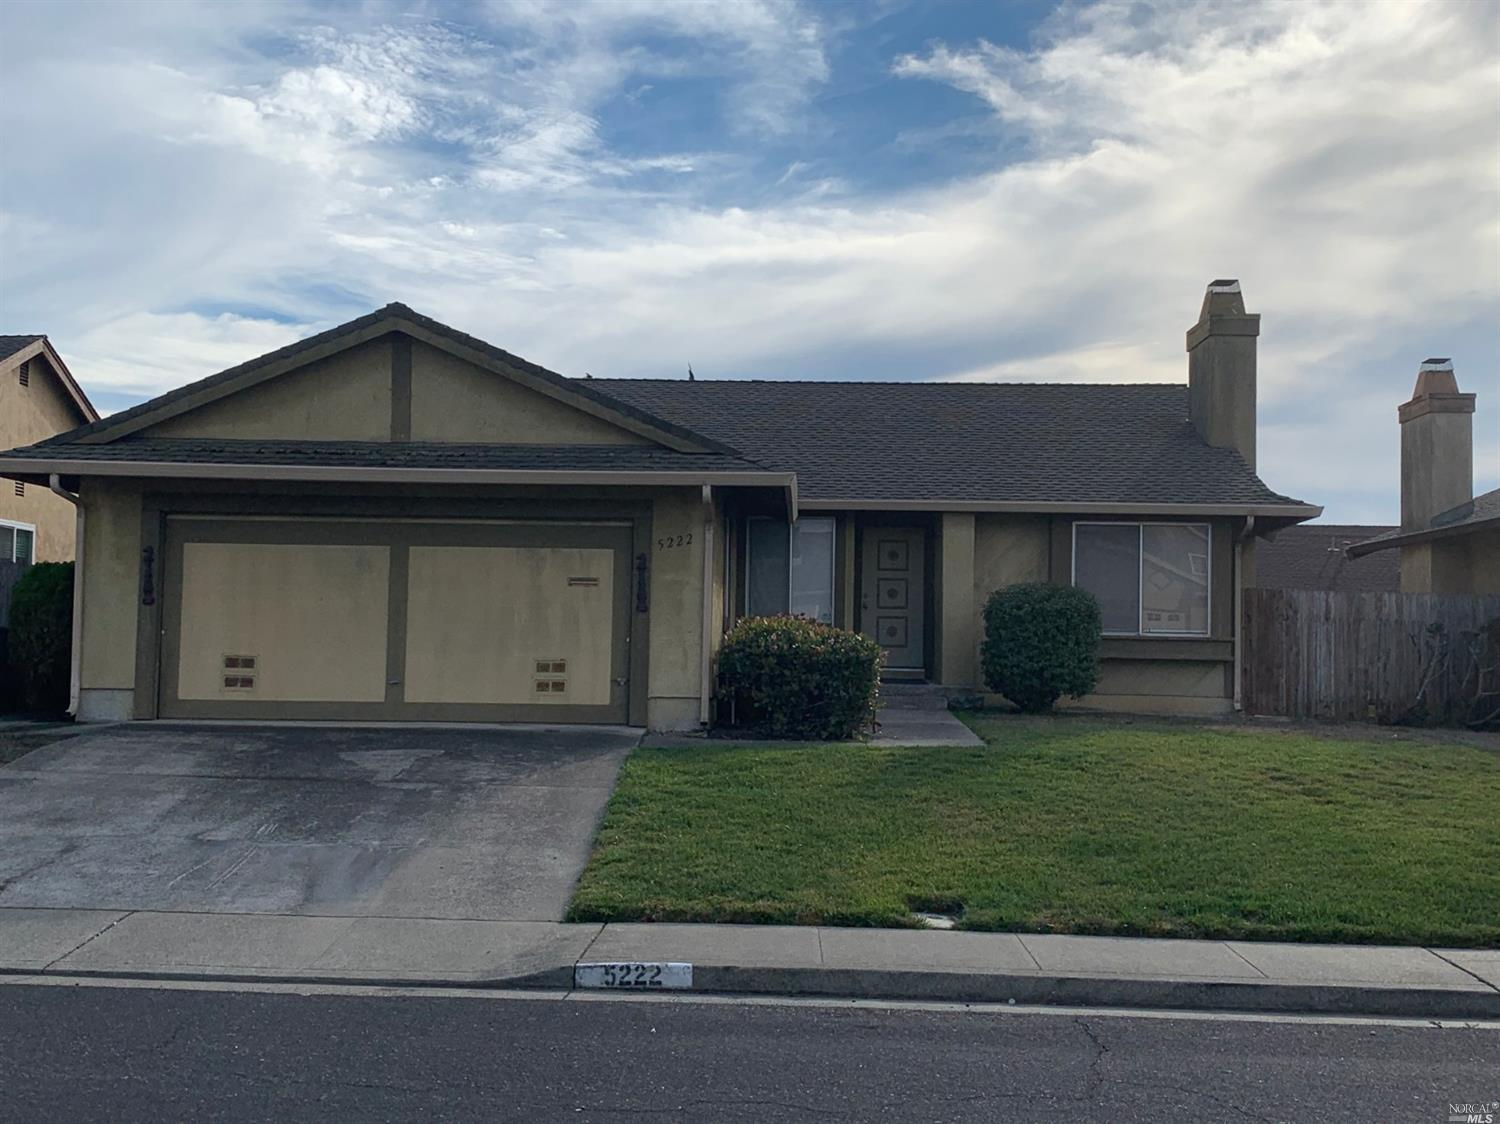 Lovely home in a quiet El Cerrito cul-de-sac. Charming 3 bed and 2 full baths. Very spacious for entertaining and hosting. Minutes from the bart station. Minutes from multiple freeways. All your shopping needs in a very close proximity. Reasonably priced. This one won't last long.